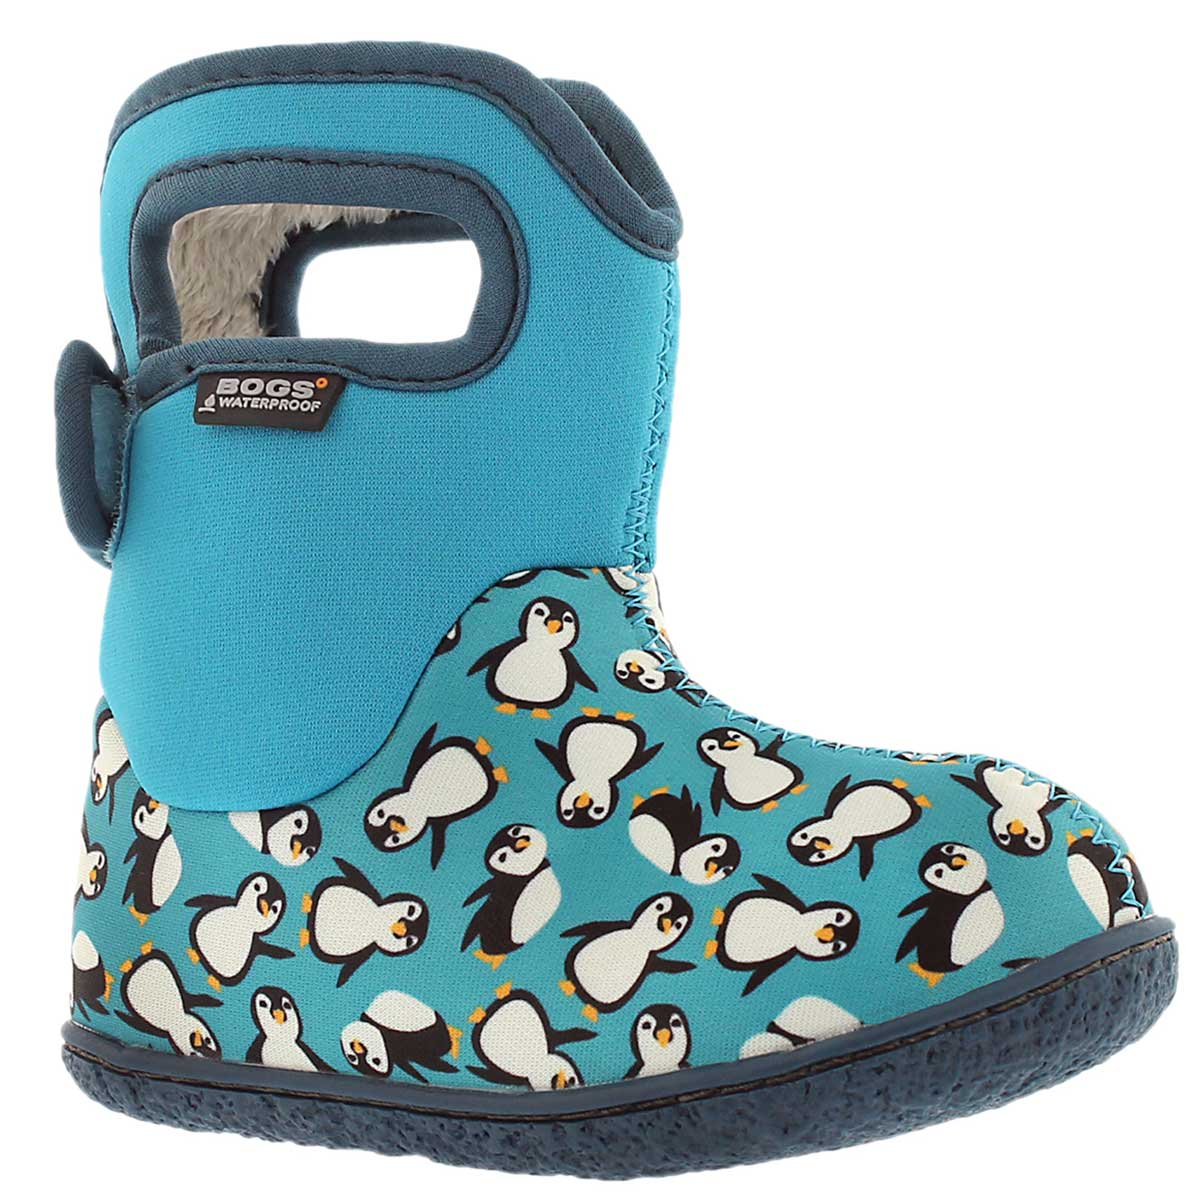 Infants' CLASSIC PENGUINS trq mlti waterprof boots